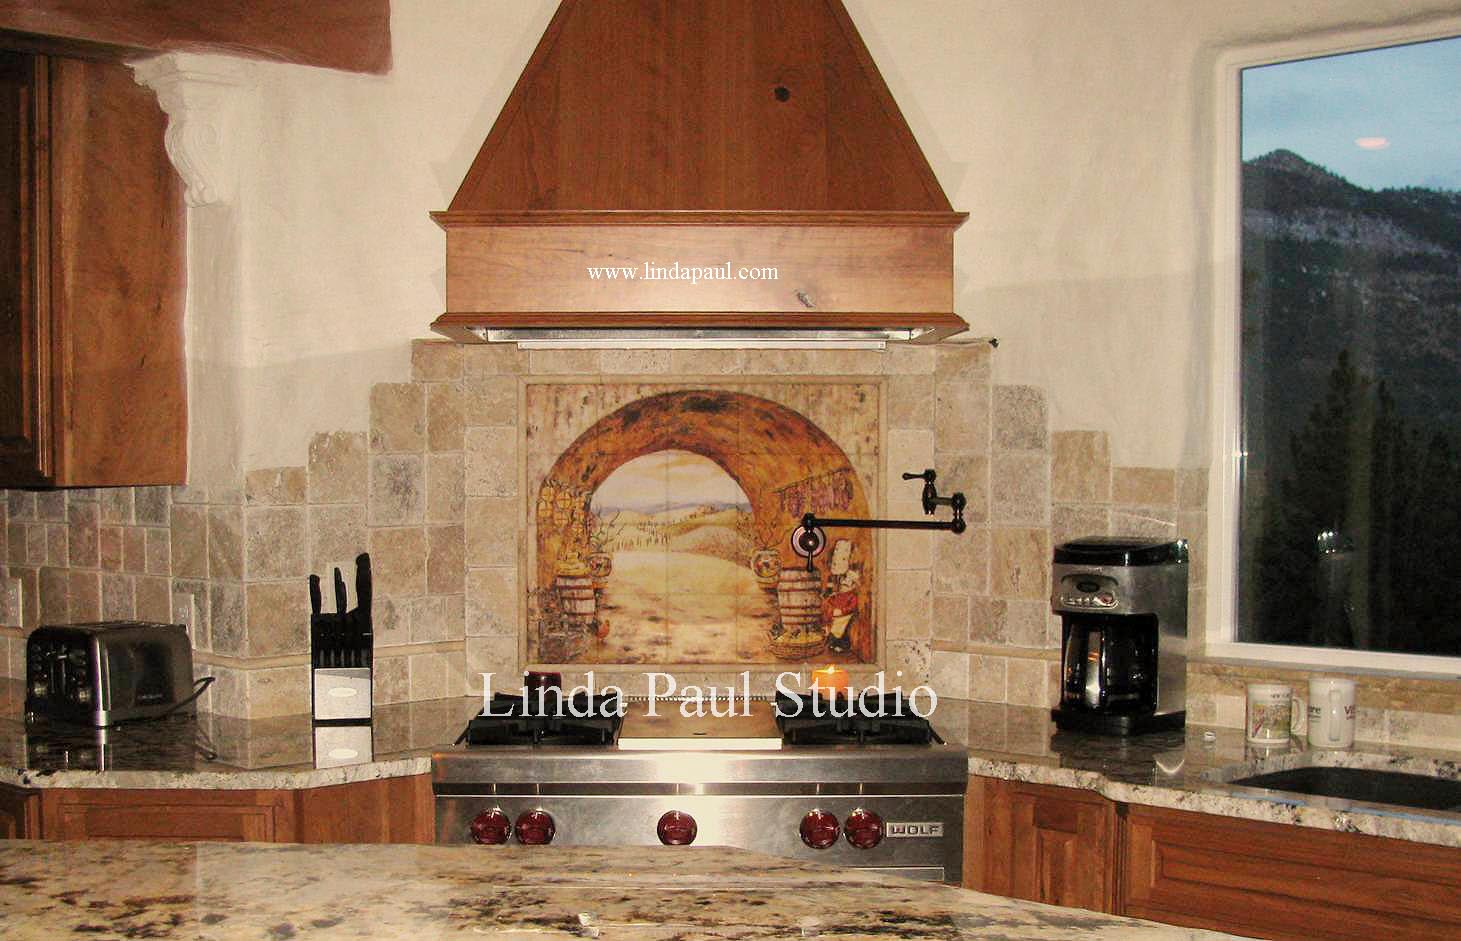 Kitchen backsplash ideas gallery of tile backsplash pictures designs - Backsplash design ...